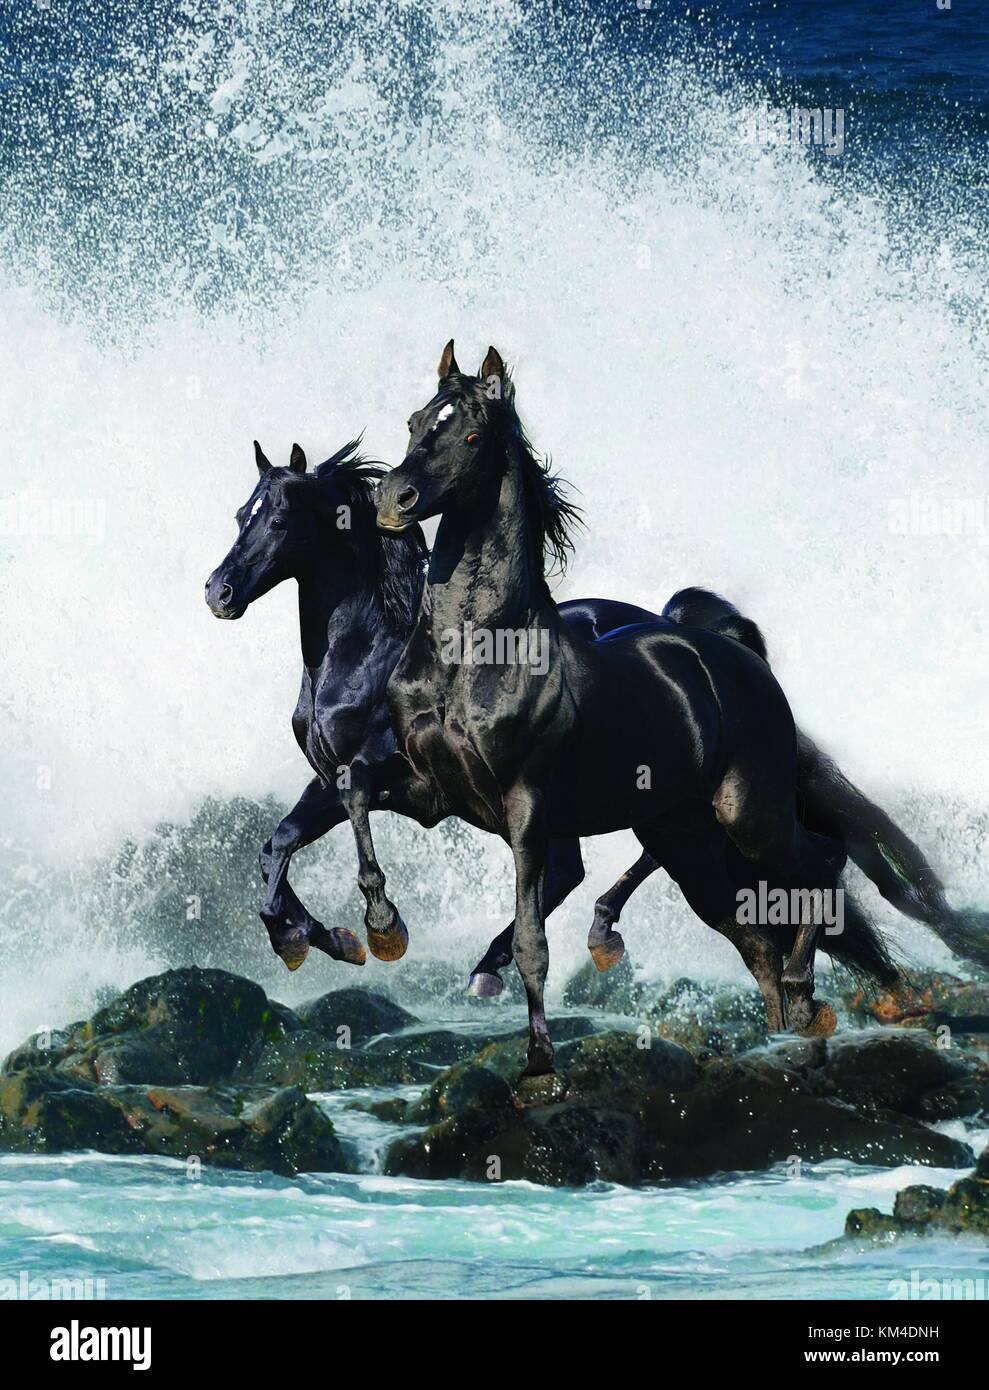 Two Black Horses Standing On Rocks With Sea Spray All Around Stock Photo Alamy